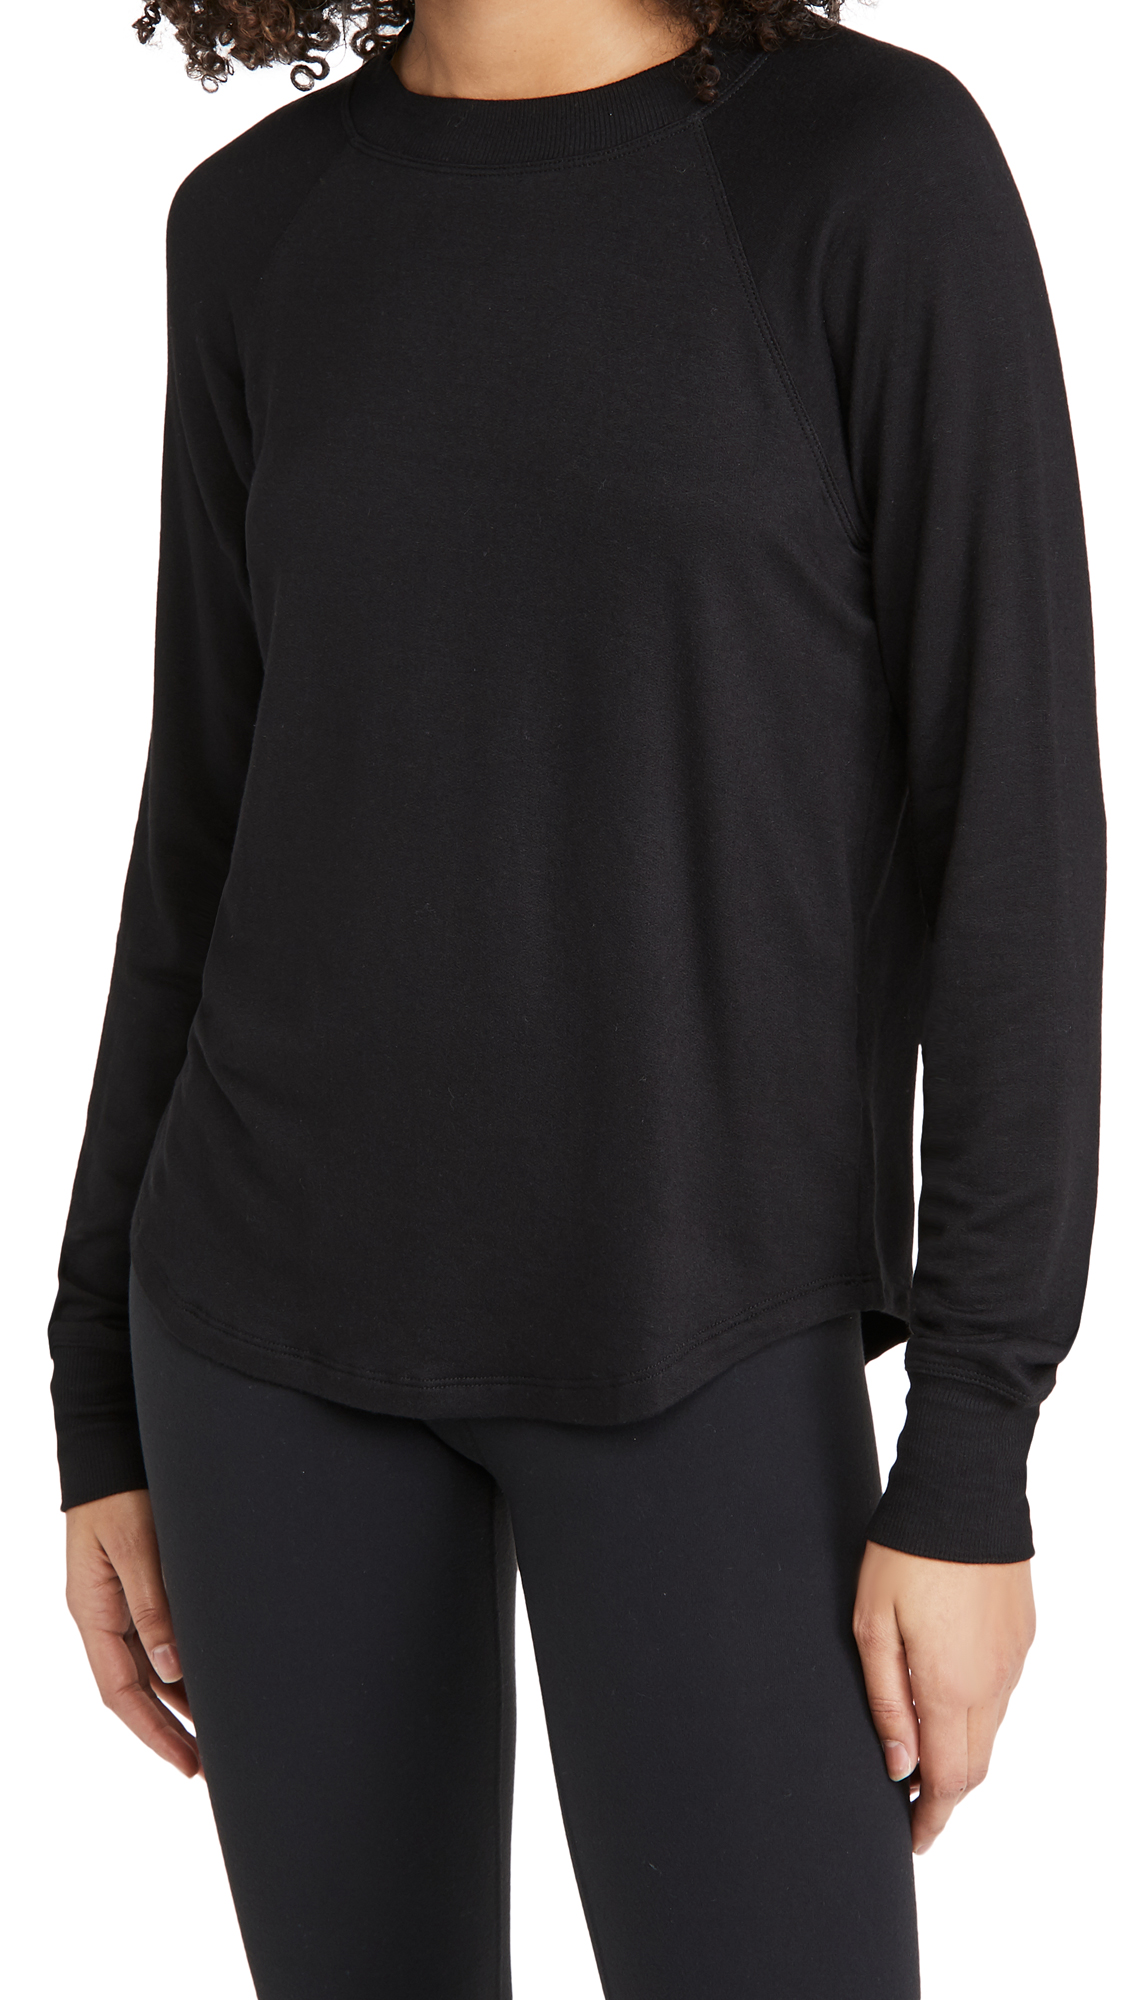 Splits59 Warm Up Pullover Sweatshirt